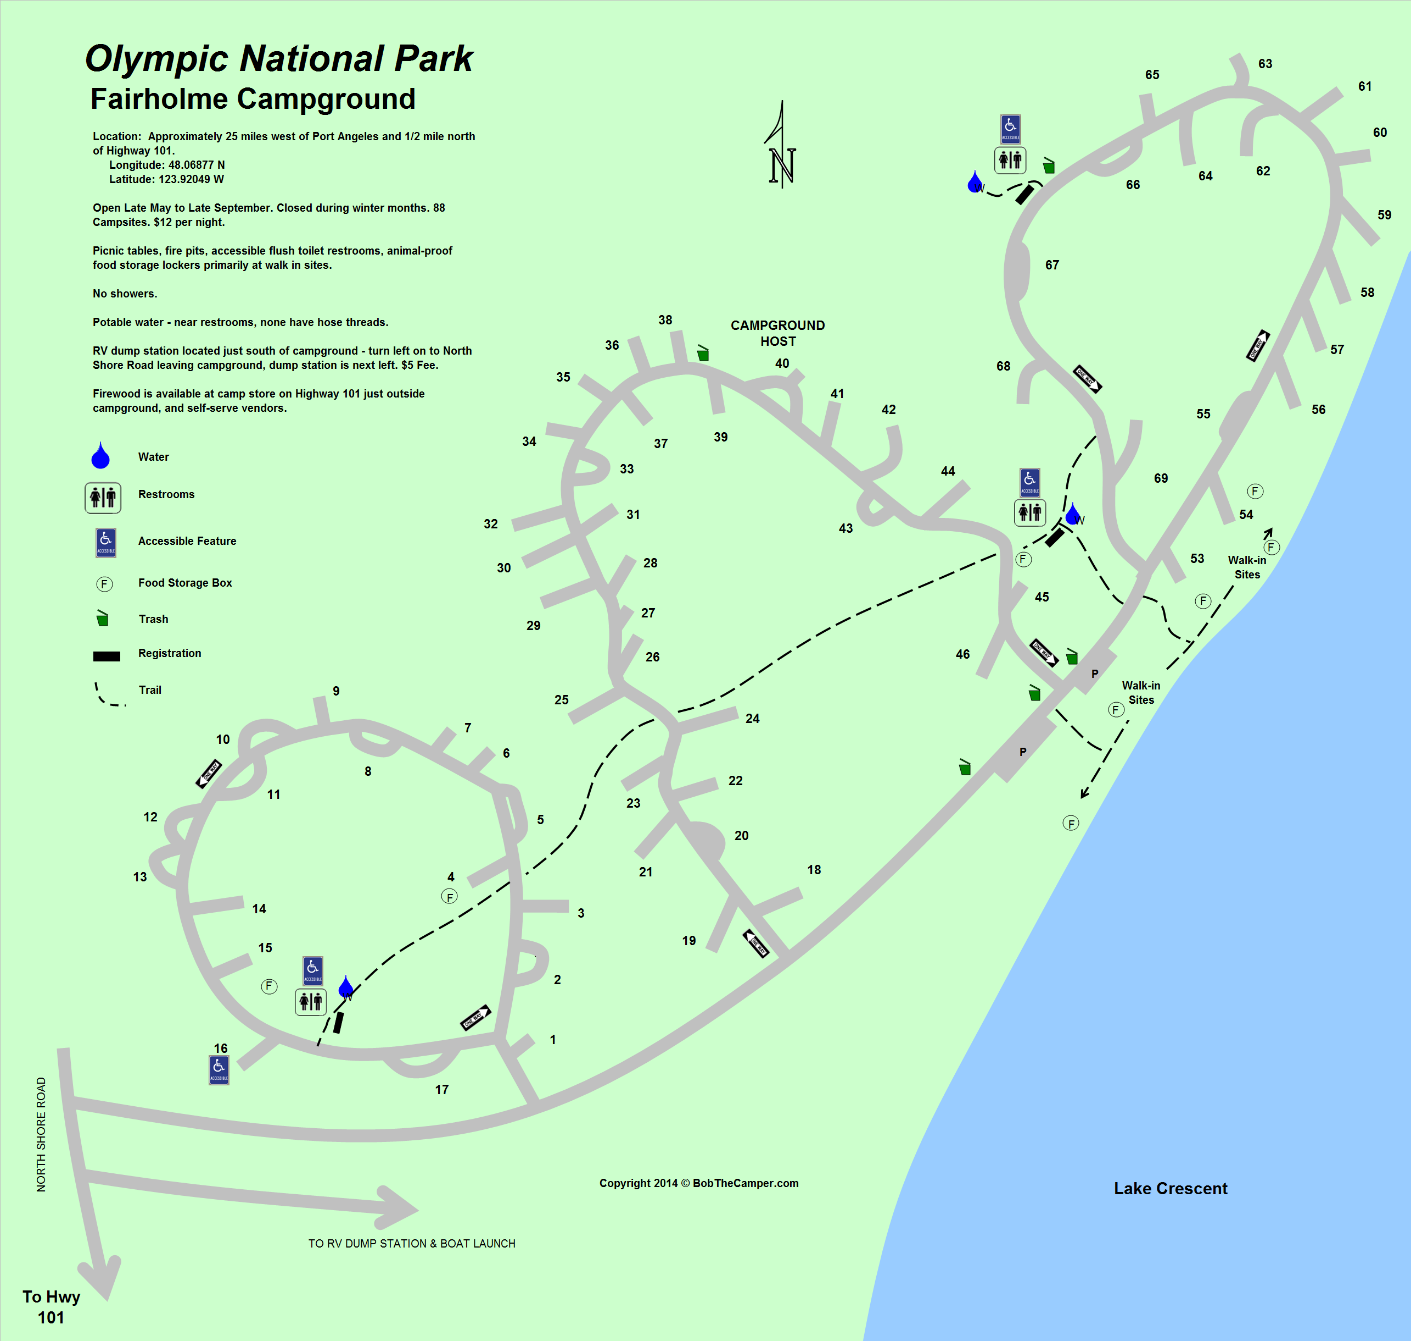 Olympic National Park Fairholme Campground Map